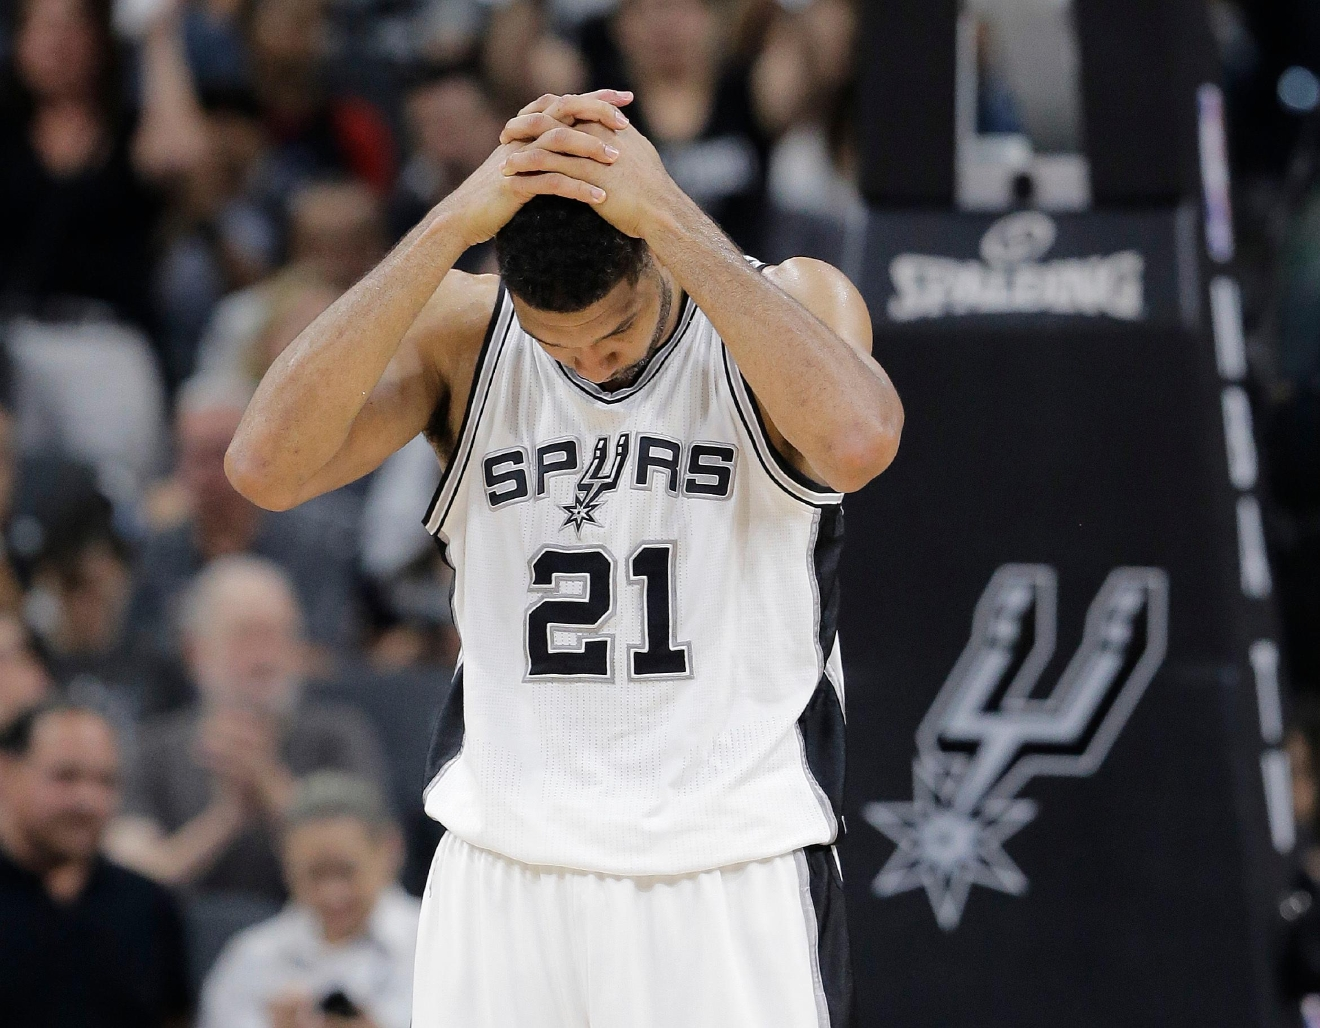 San Antonio Spurs forward Tim Duncan holds his hands over his head after a play during the second half in Game 5 of the team's second-round NBA basketball playoff series against the Oklahoma City Thunder, Tuesday, May 10, 2016, in San Antonio. Oklahoma City won 95-91. (AP Photo/Eric Gay)